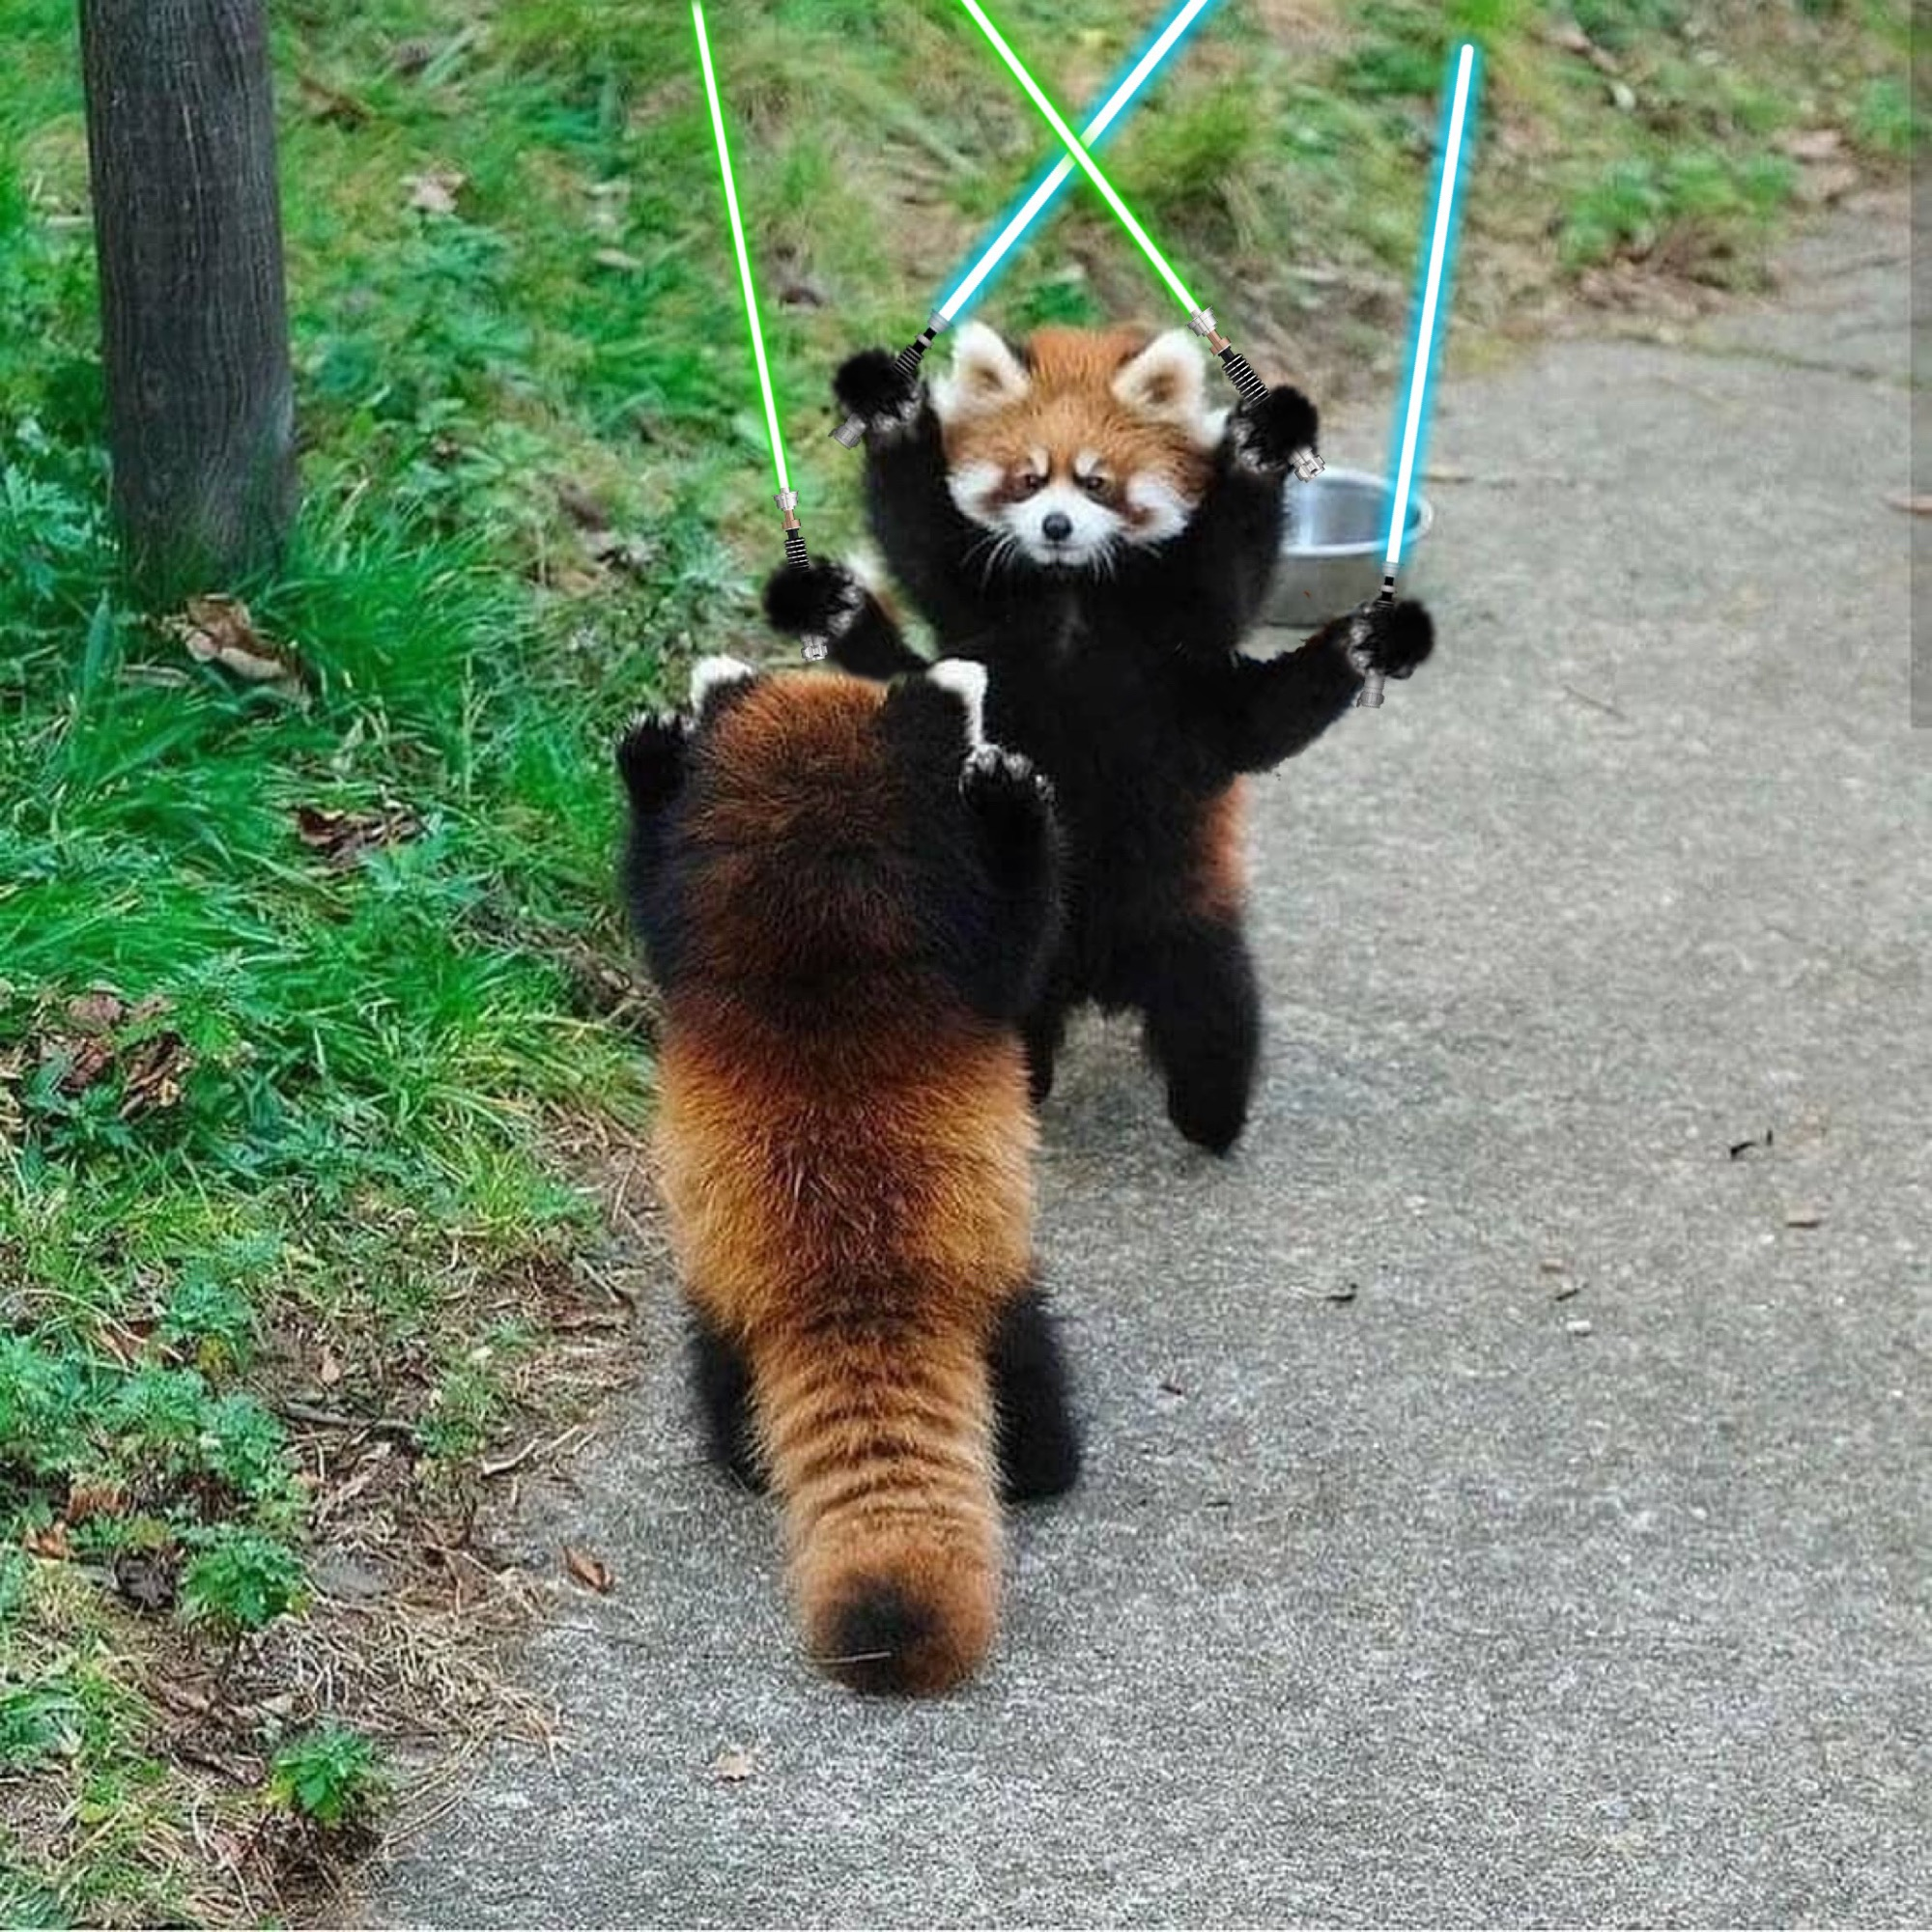 General Kenobi! (from PsBattle: These Two Red Pandas Facing Off) done by u/MagicWoodyAllenJesus